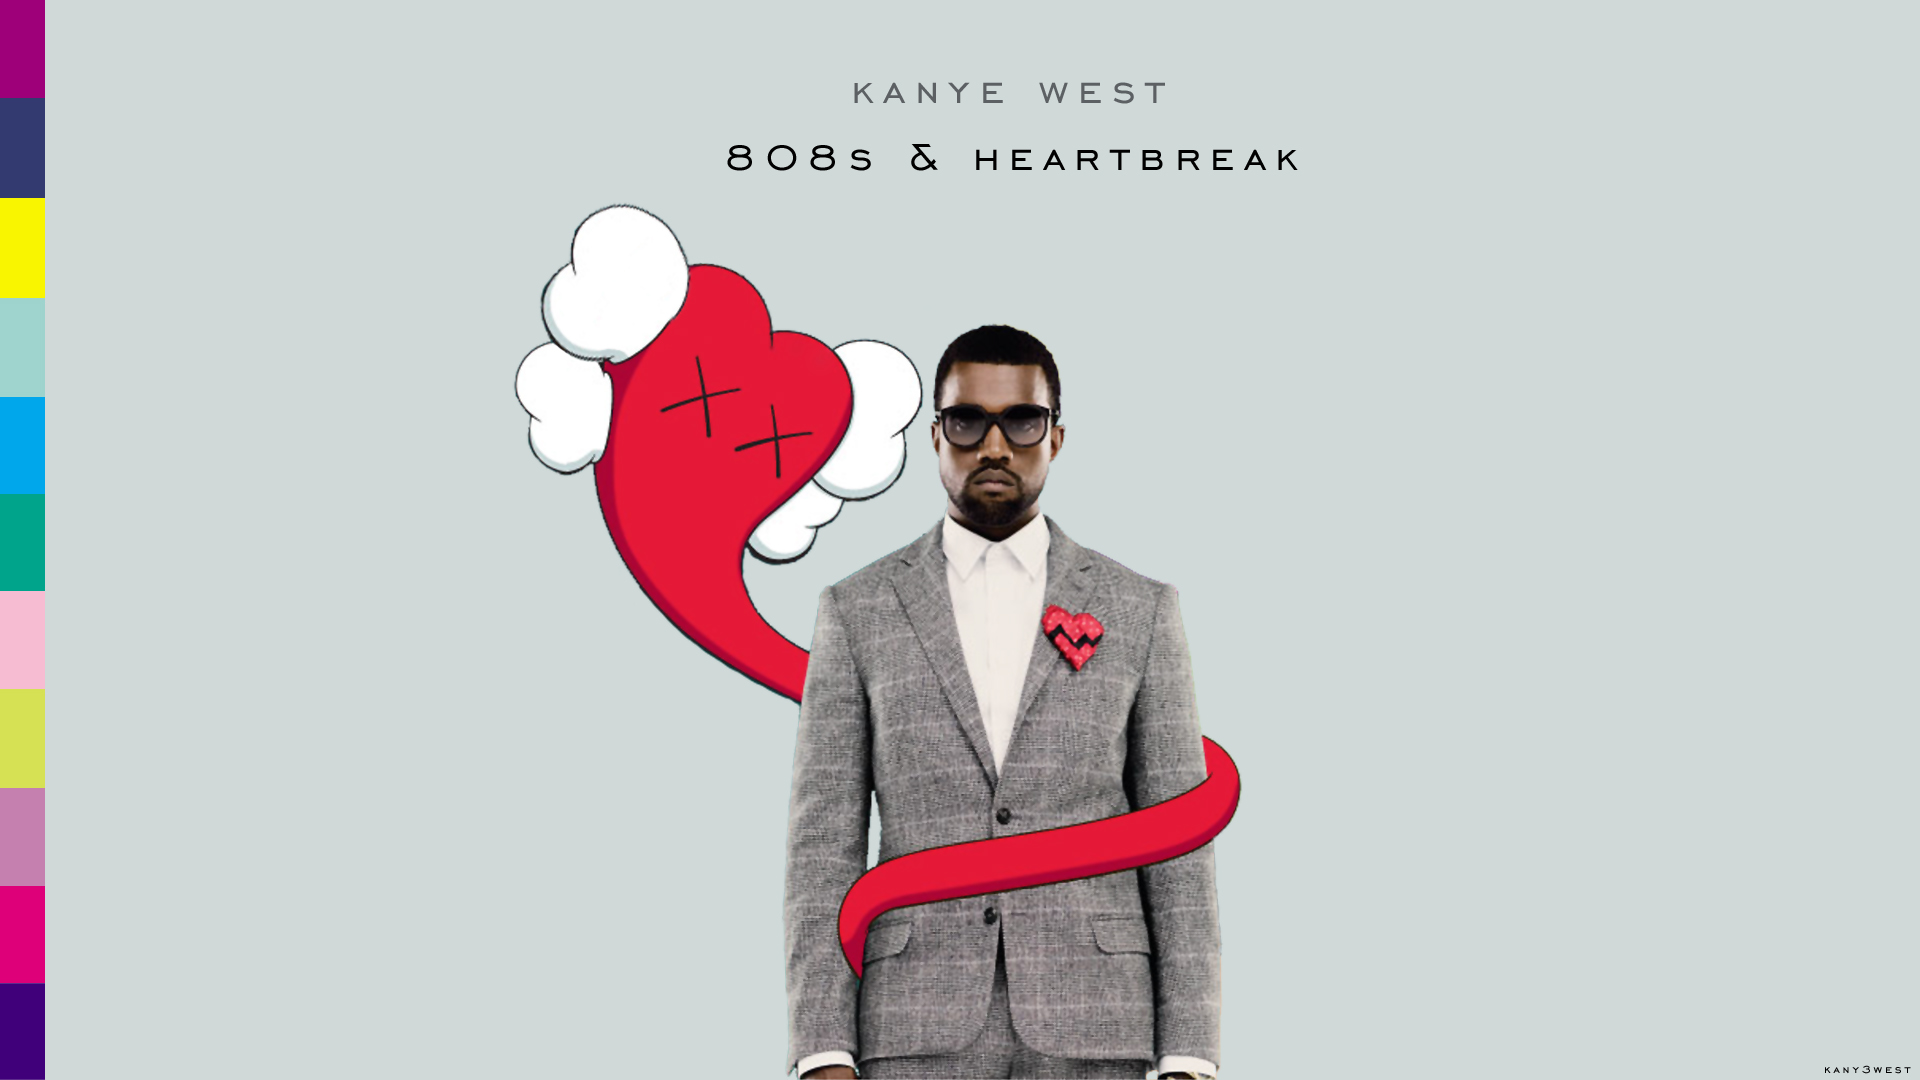 Shop radio cast has launched pre-orders for the highly anticipated vinyl reissue of kanye west 2019s 808s  heartbreak